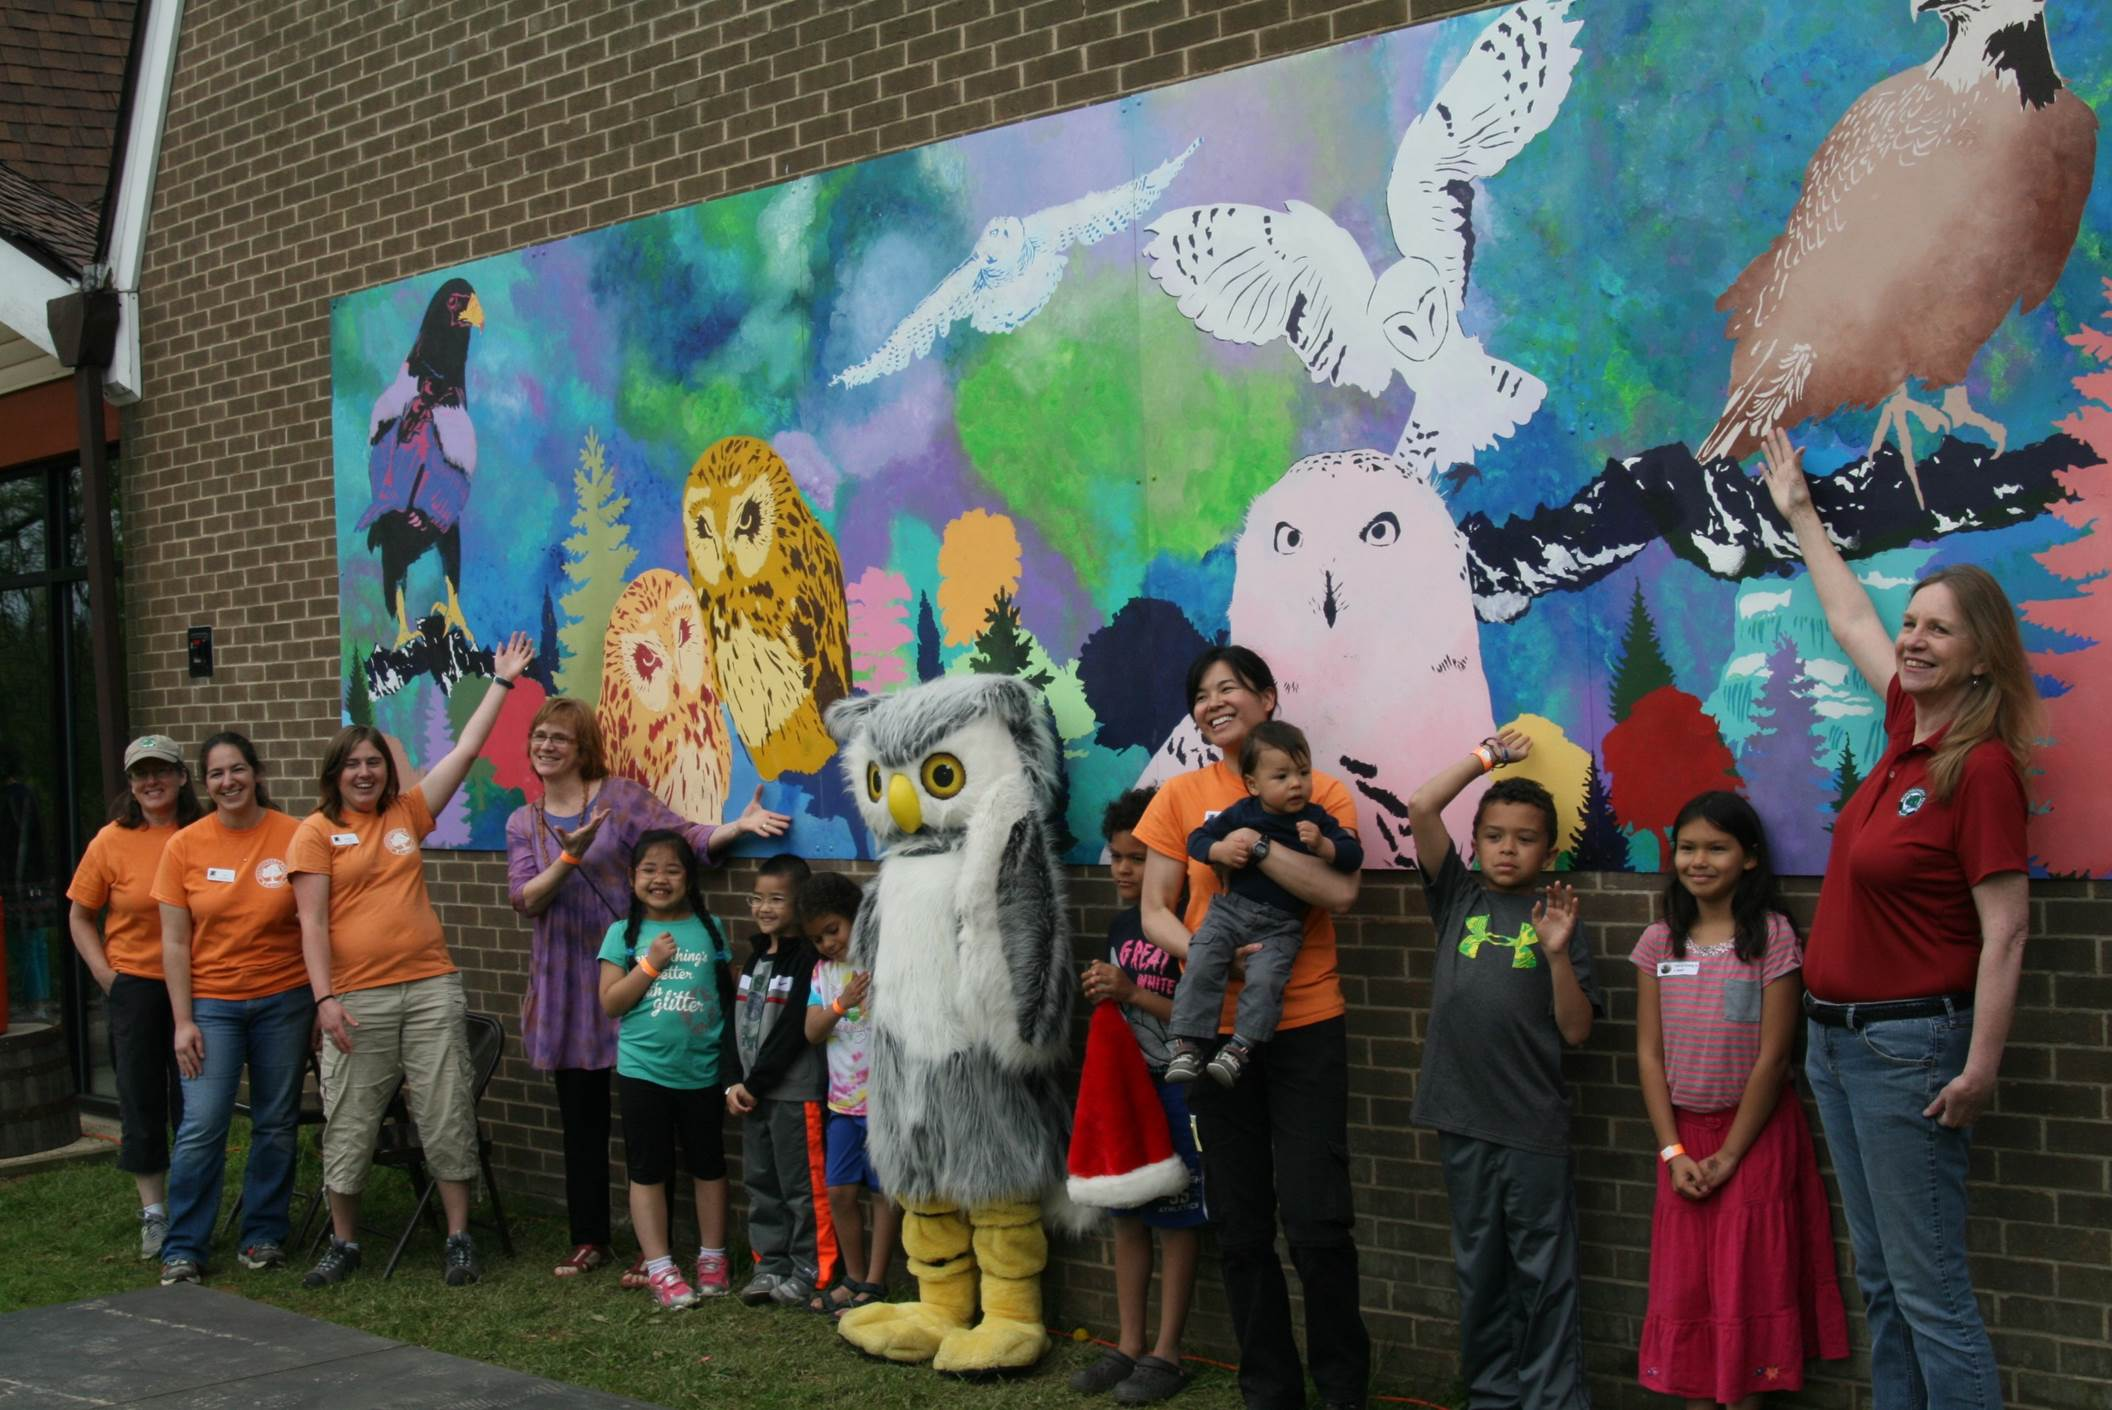 This raptors mural at Meadowside Nature Center was created by women at the Montgomery County Correctional Facility, with lead artists Peter Krsko and Alicia Cosnahan